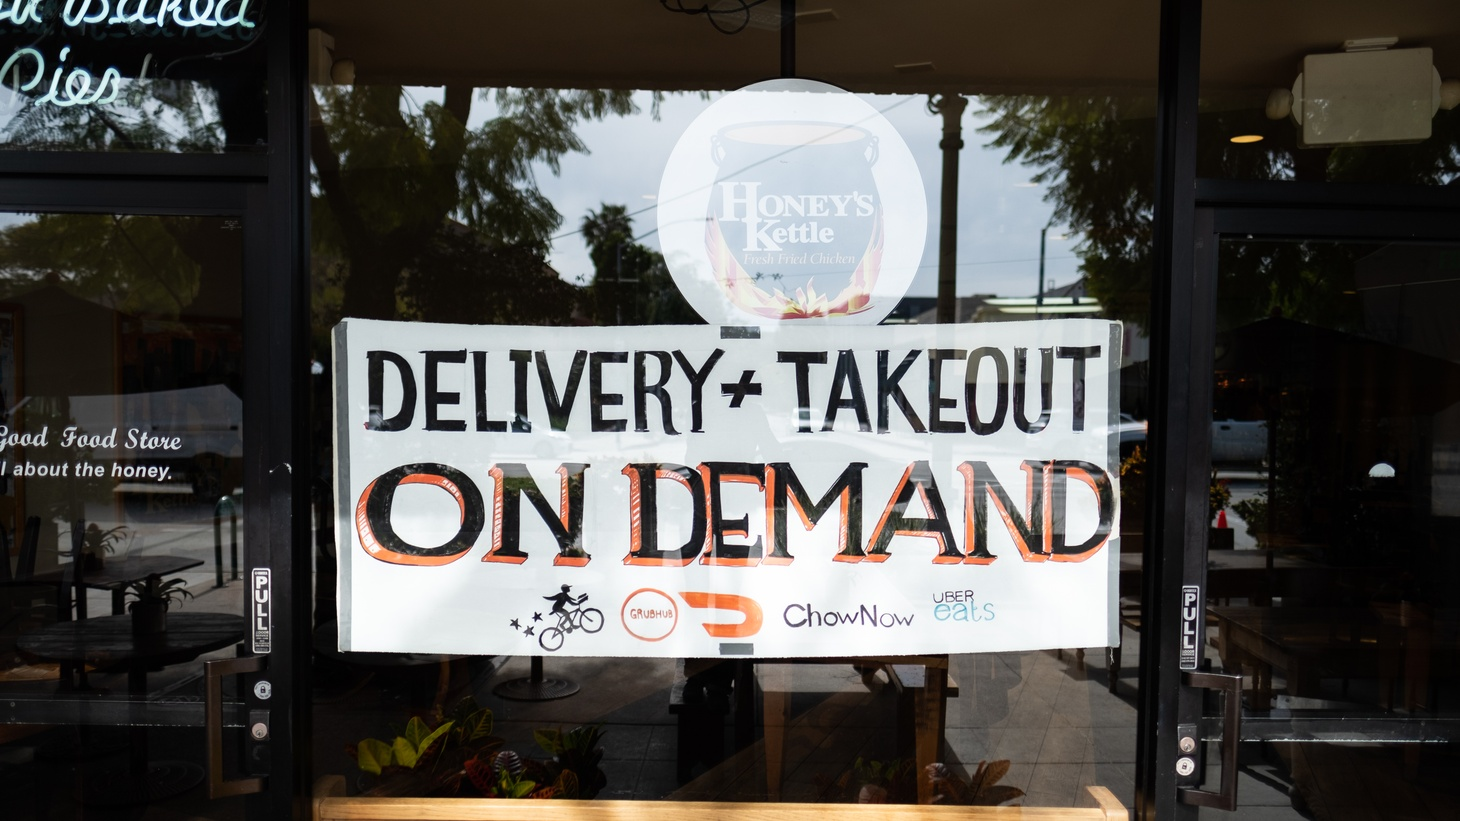 This restaurant in downtown Culver City, like many others in LA, is offering only takeout and delivery. And so, a new nonprofit is stepping up to help restaurants and medical workers with food during this coronavirus outbreak.